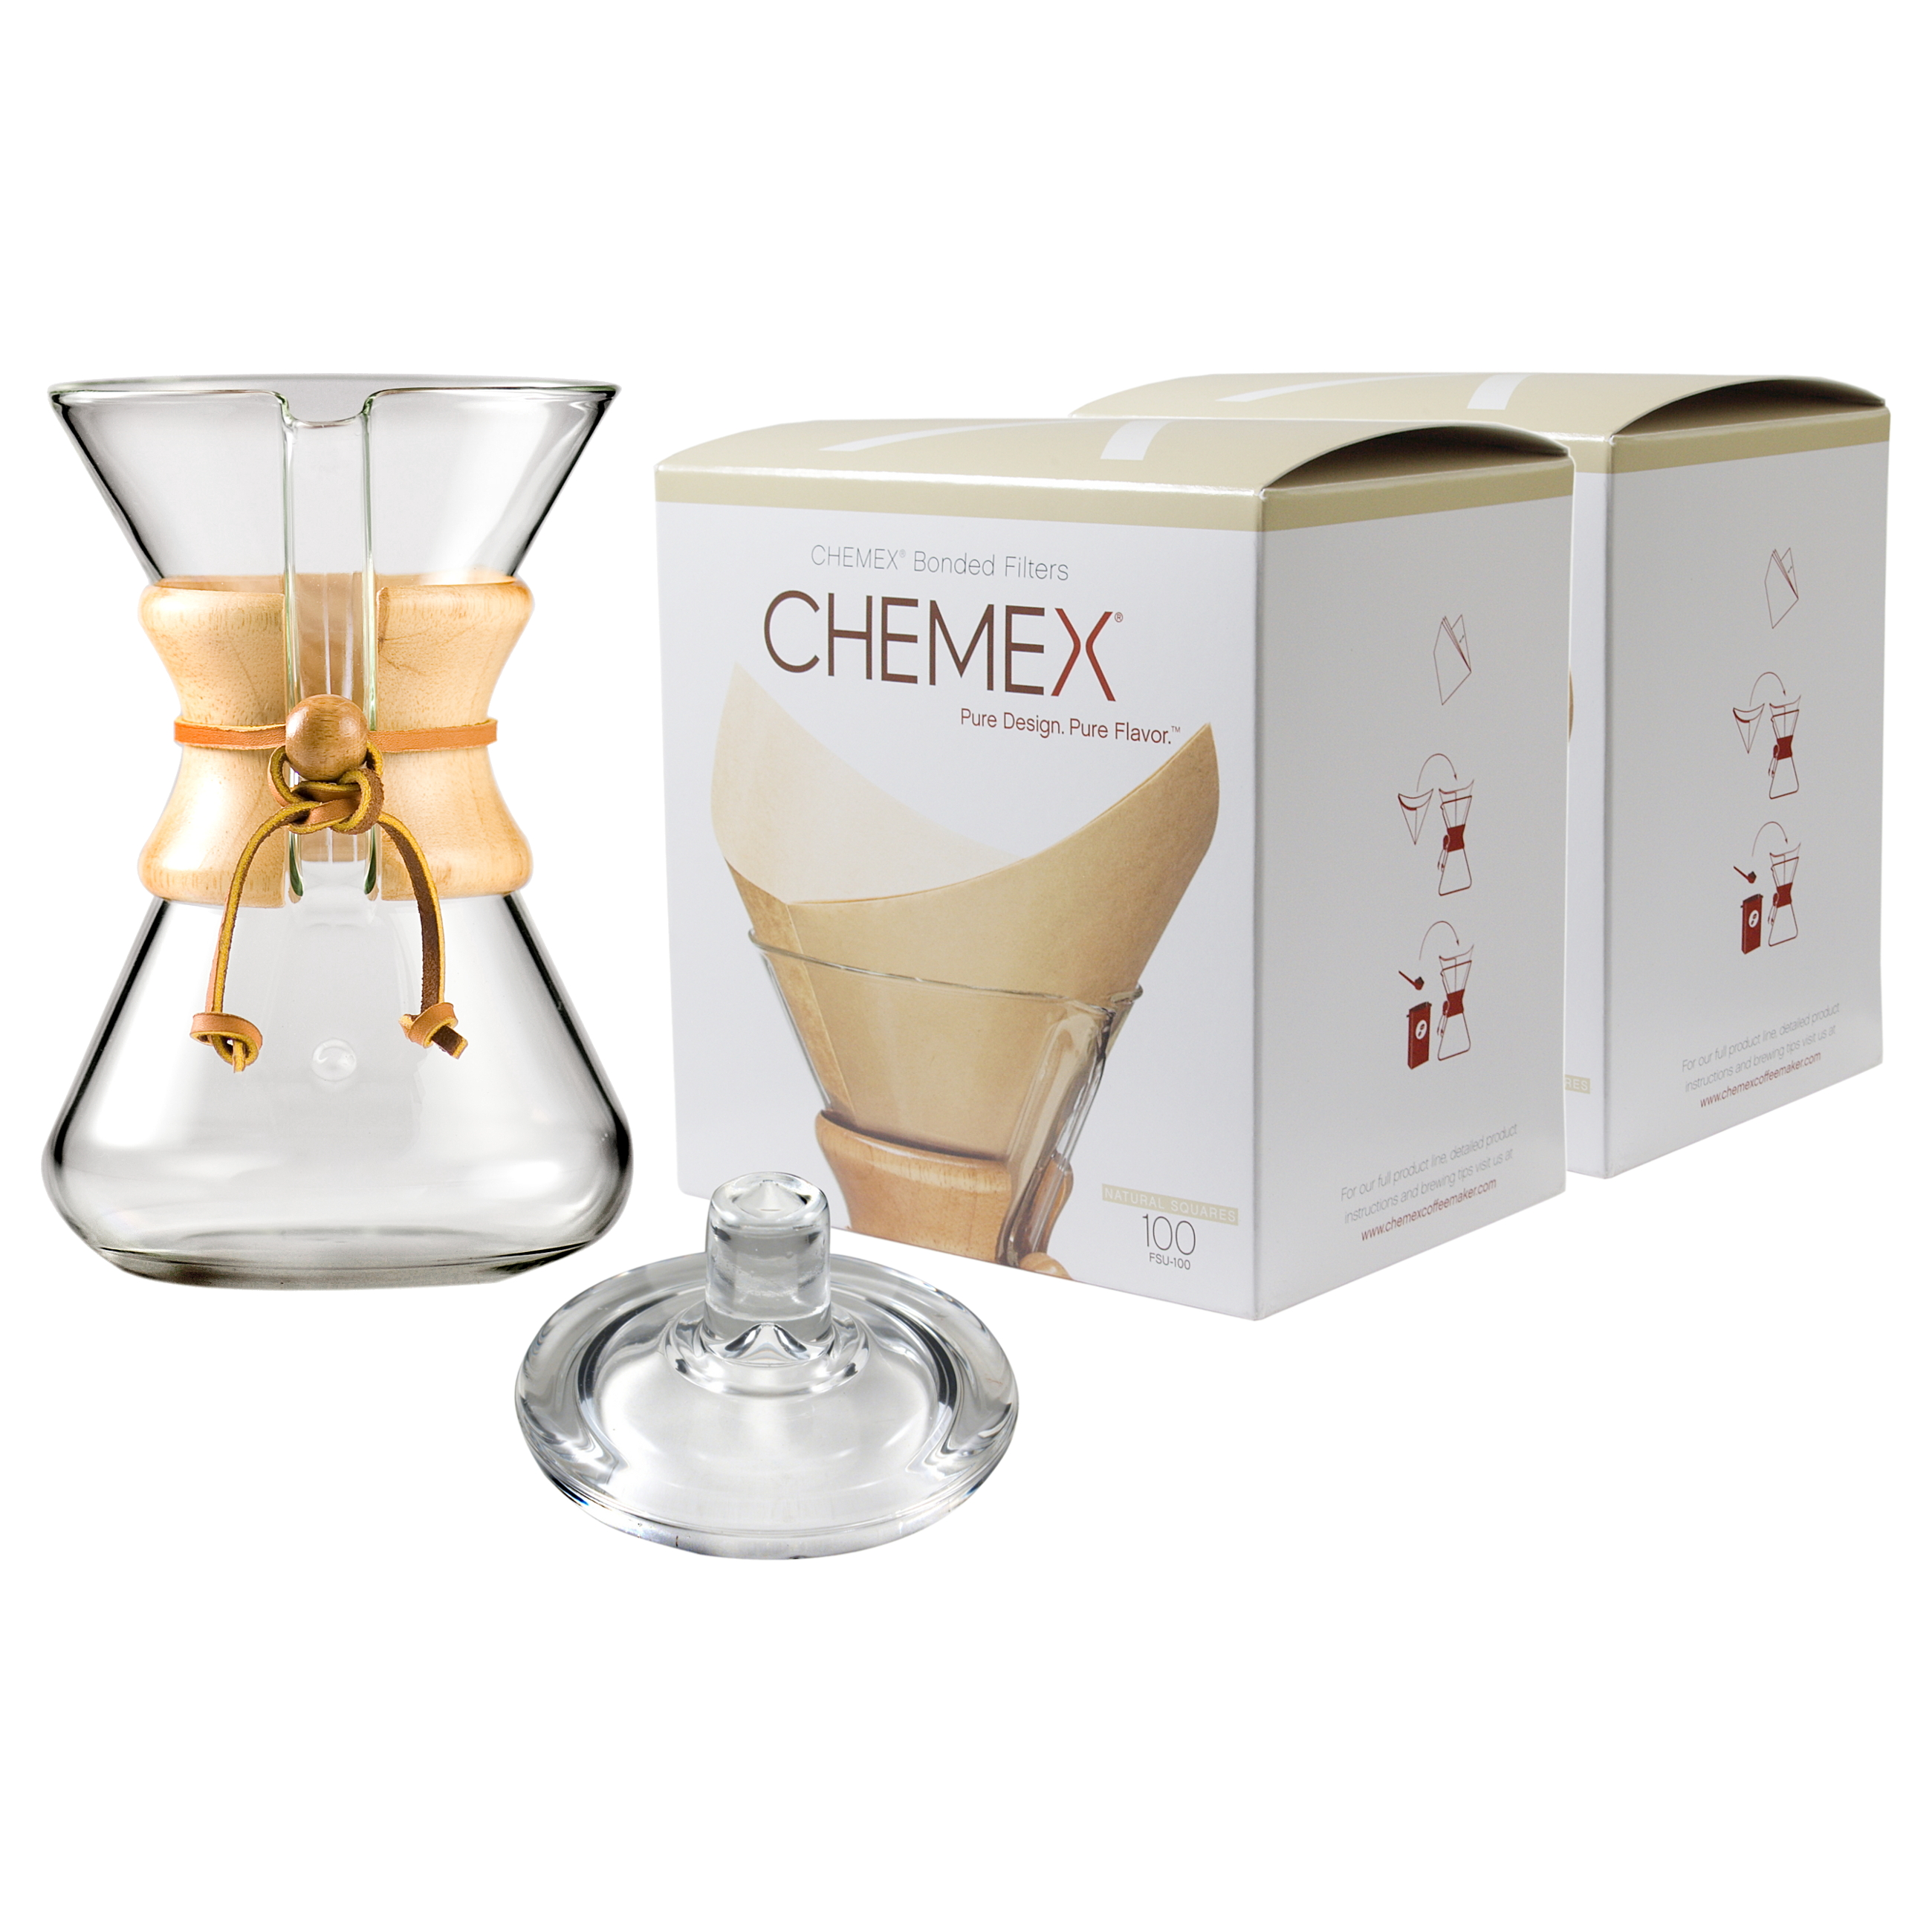 Chemex Wood Collar and Tie Glass 30 Ounce Coffee Maker with Cover and 200 Count Bonded Unbleached Pre-Folded Square Coffee Filters